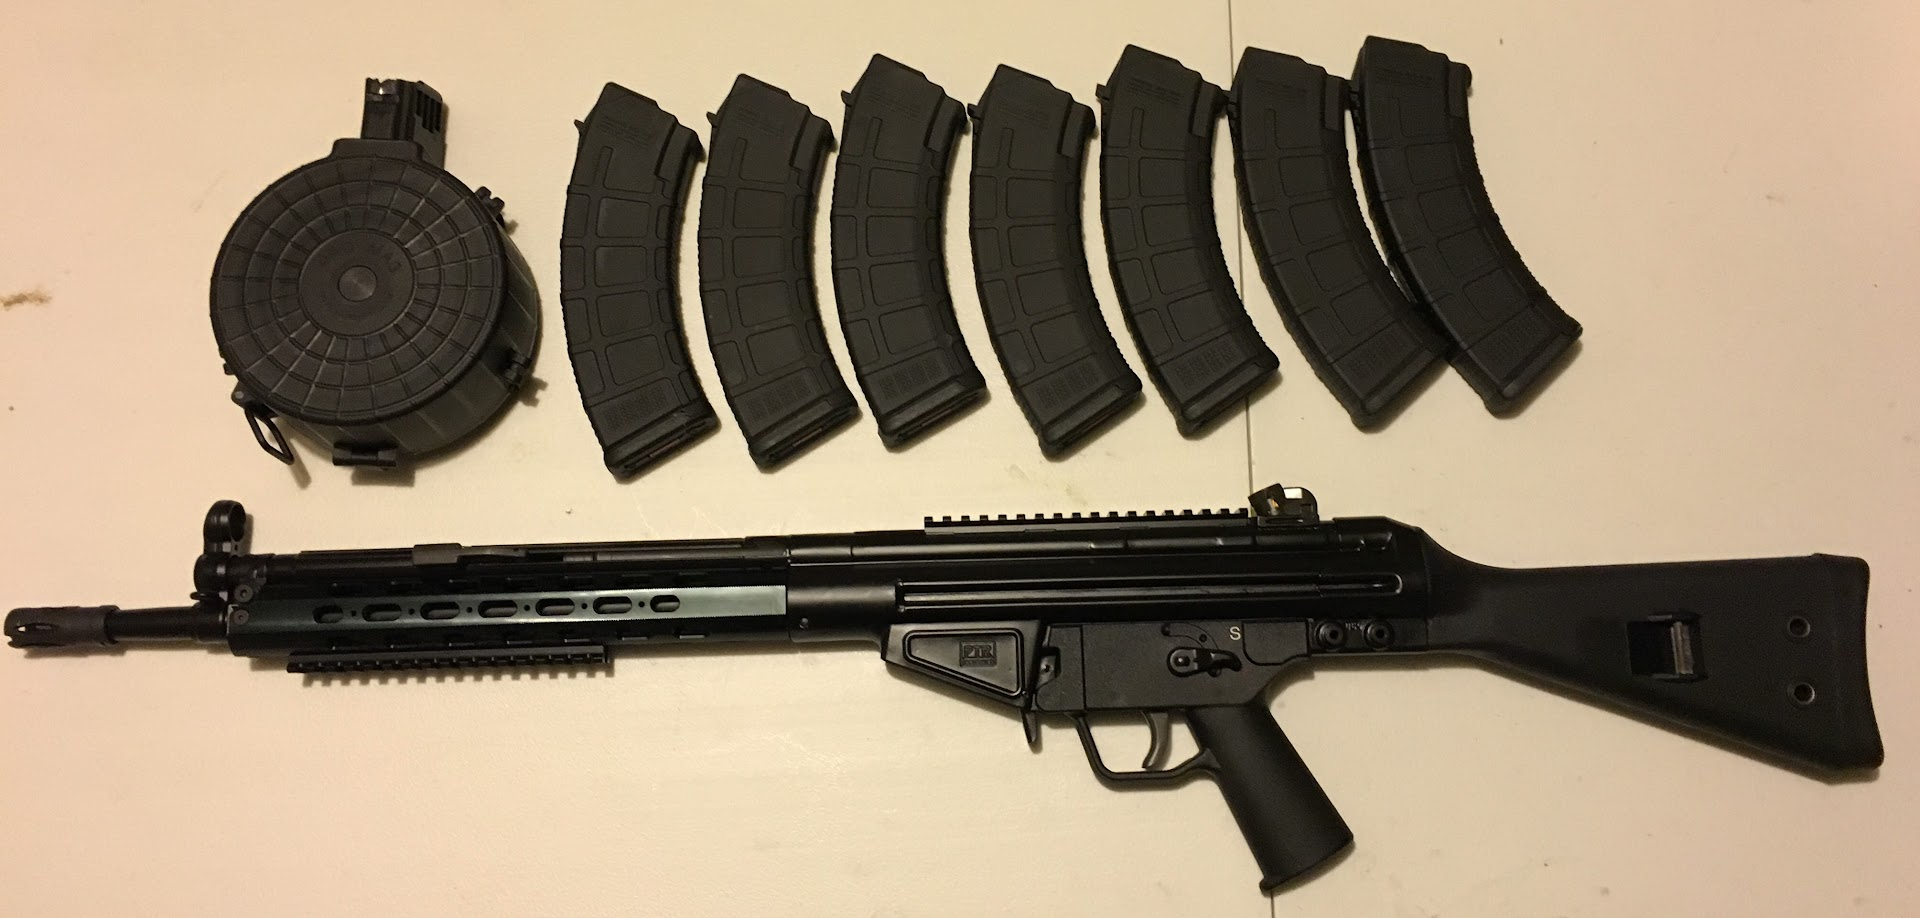 Wts ptr 32 kfr gen ii in 762x39 takes ak mags im asking 950 firm publicscrutiny Images